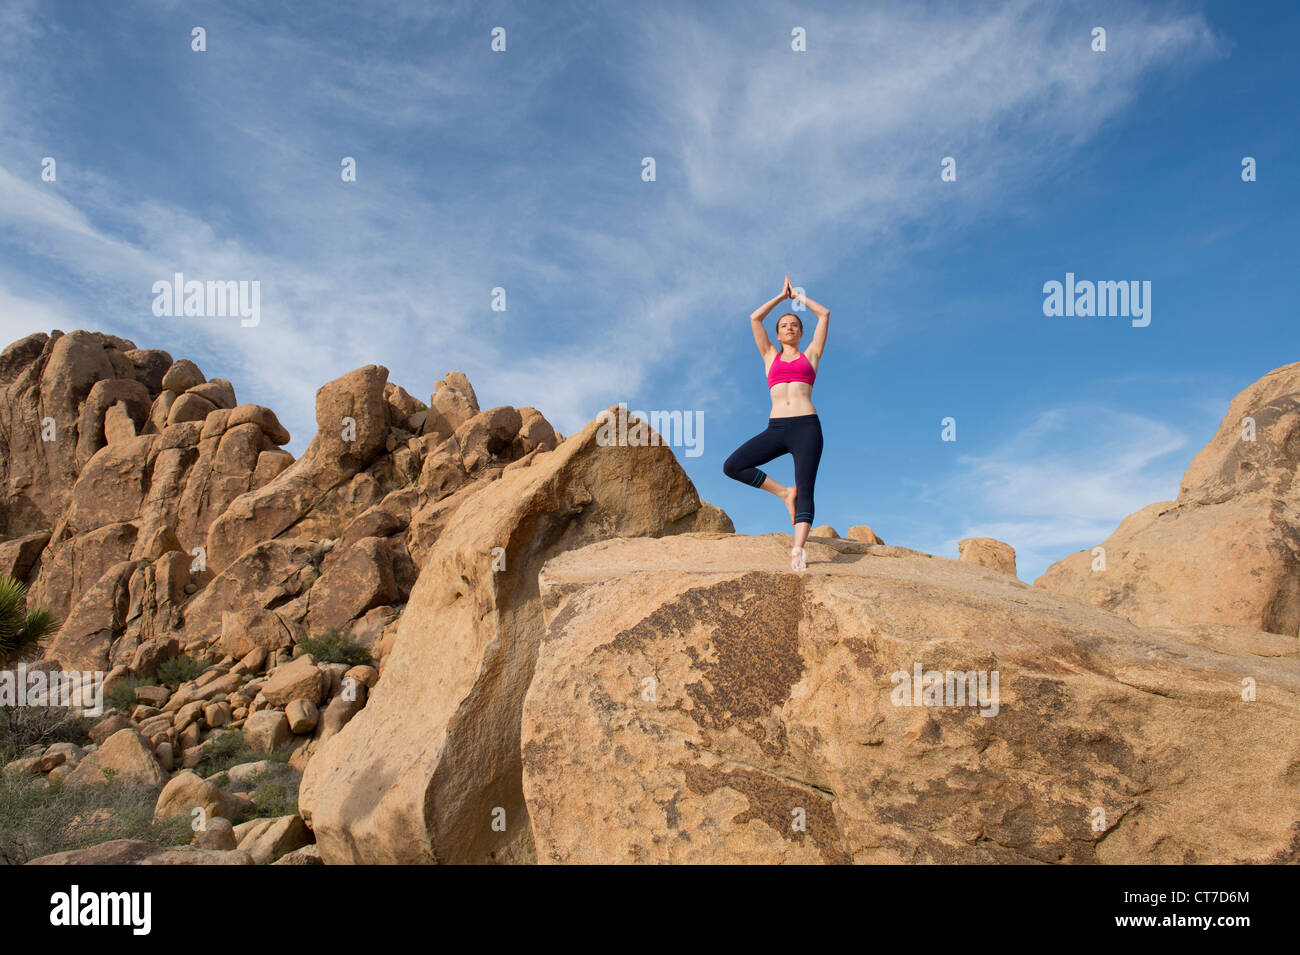 Young woman in tree pose on desert rocks - Stock Image